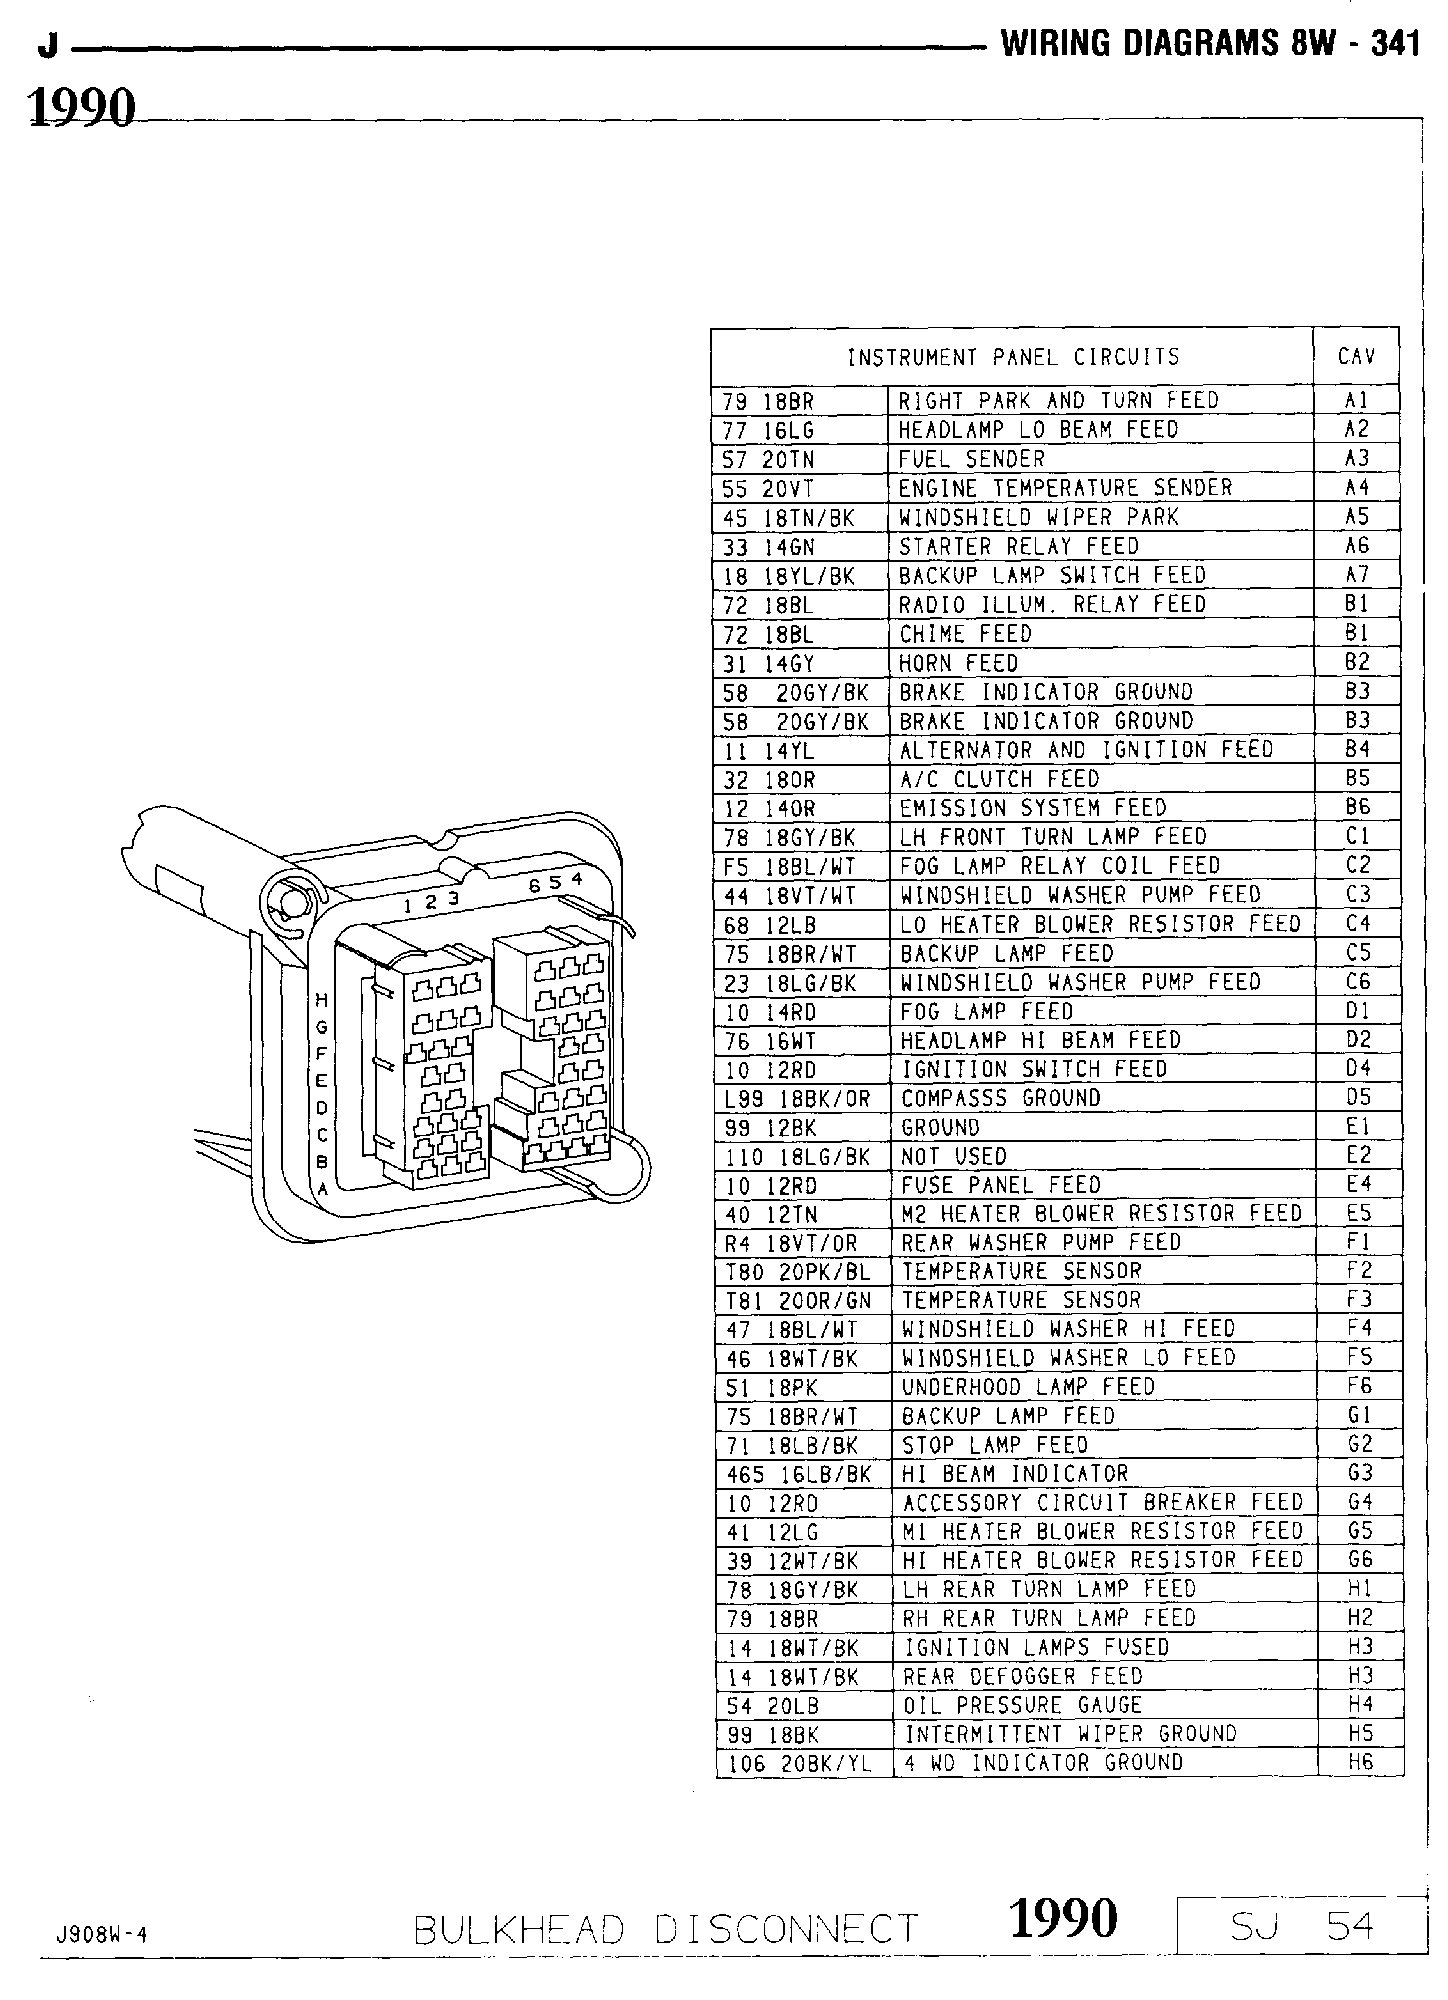 Tom 'Oljeep' Collins FSJ Wiring Page on 1990 ford taurus wiring diagram, 97 jeep wiring diagram, 1990 jeep yj parts, 1990 mitsubishi montero wiring diagram, jeep wrangler wiring harness diagram, 1990 jeep comanche wiring diagram, 1990 ford bronco wiring diagram, 1990 dodge ram wiring diagram, 1990 dodge dakota wiring diagram, 1990 honda crx wiring diagram, 95 jeep cherokee wiring diagram, 1990 jeep wrangler parts diagram, 1990 dodge ramcharger wiring diagram, 90 jeep wrangler wiring diagram, 1990 jeep yj drive shaft, 1990 dodge spirit wiring diagram, 1990 jeep yj ignition coil, 1990 ford thunderbird wiring diagram, 1990 jeep yj exhaust, jeep wrangler ac wiring diagram,